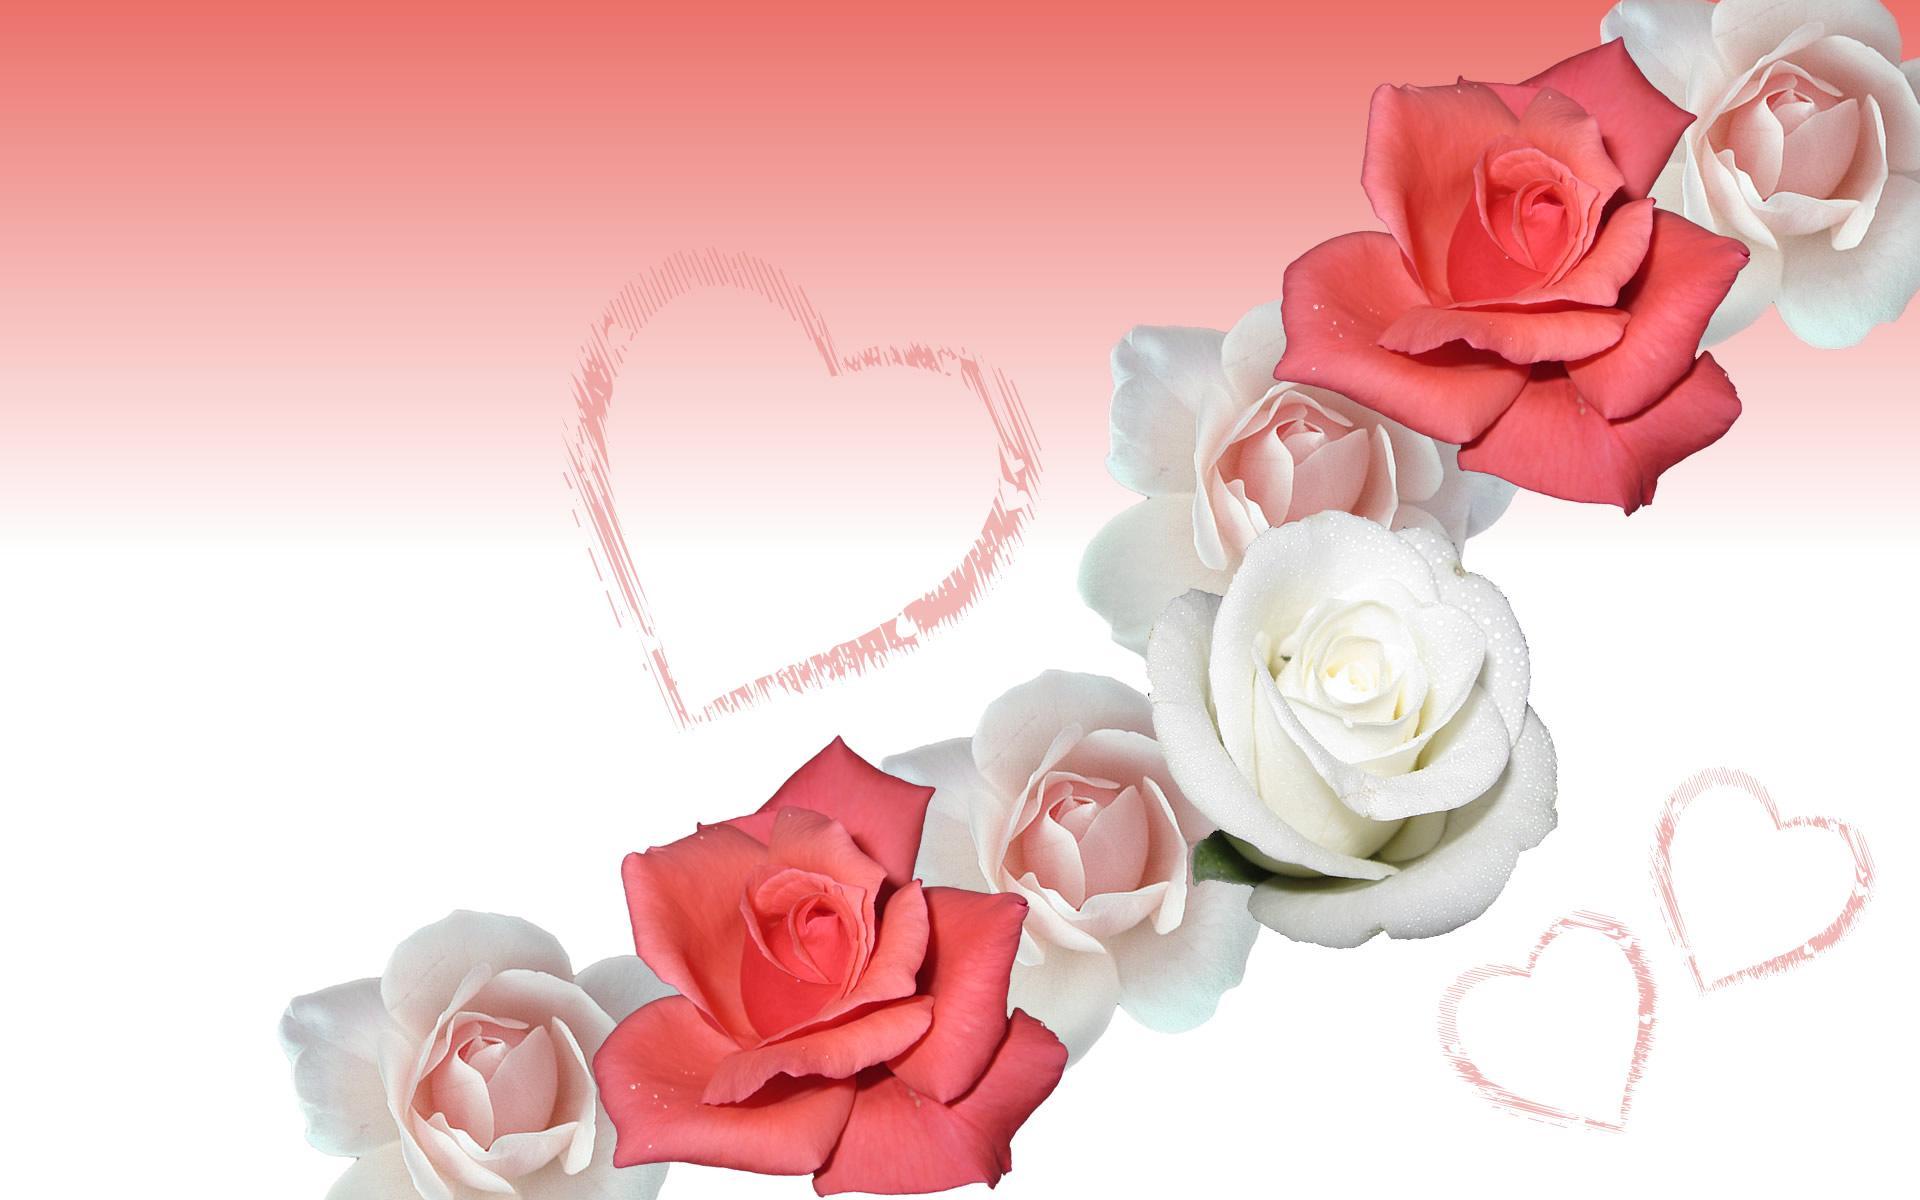 Romantic rose wallpaper. Romantic Flower roses, with hearts for Christmas